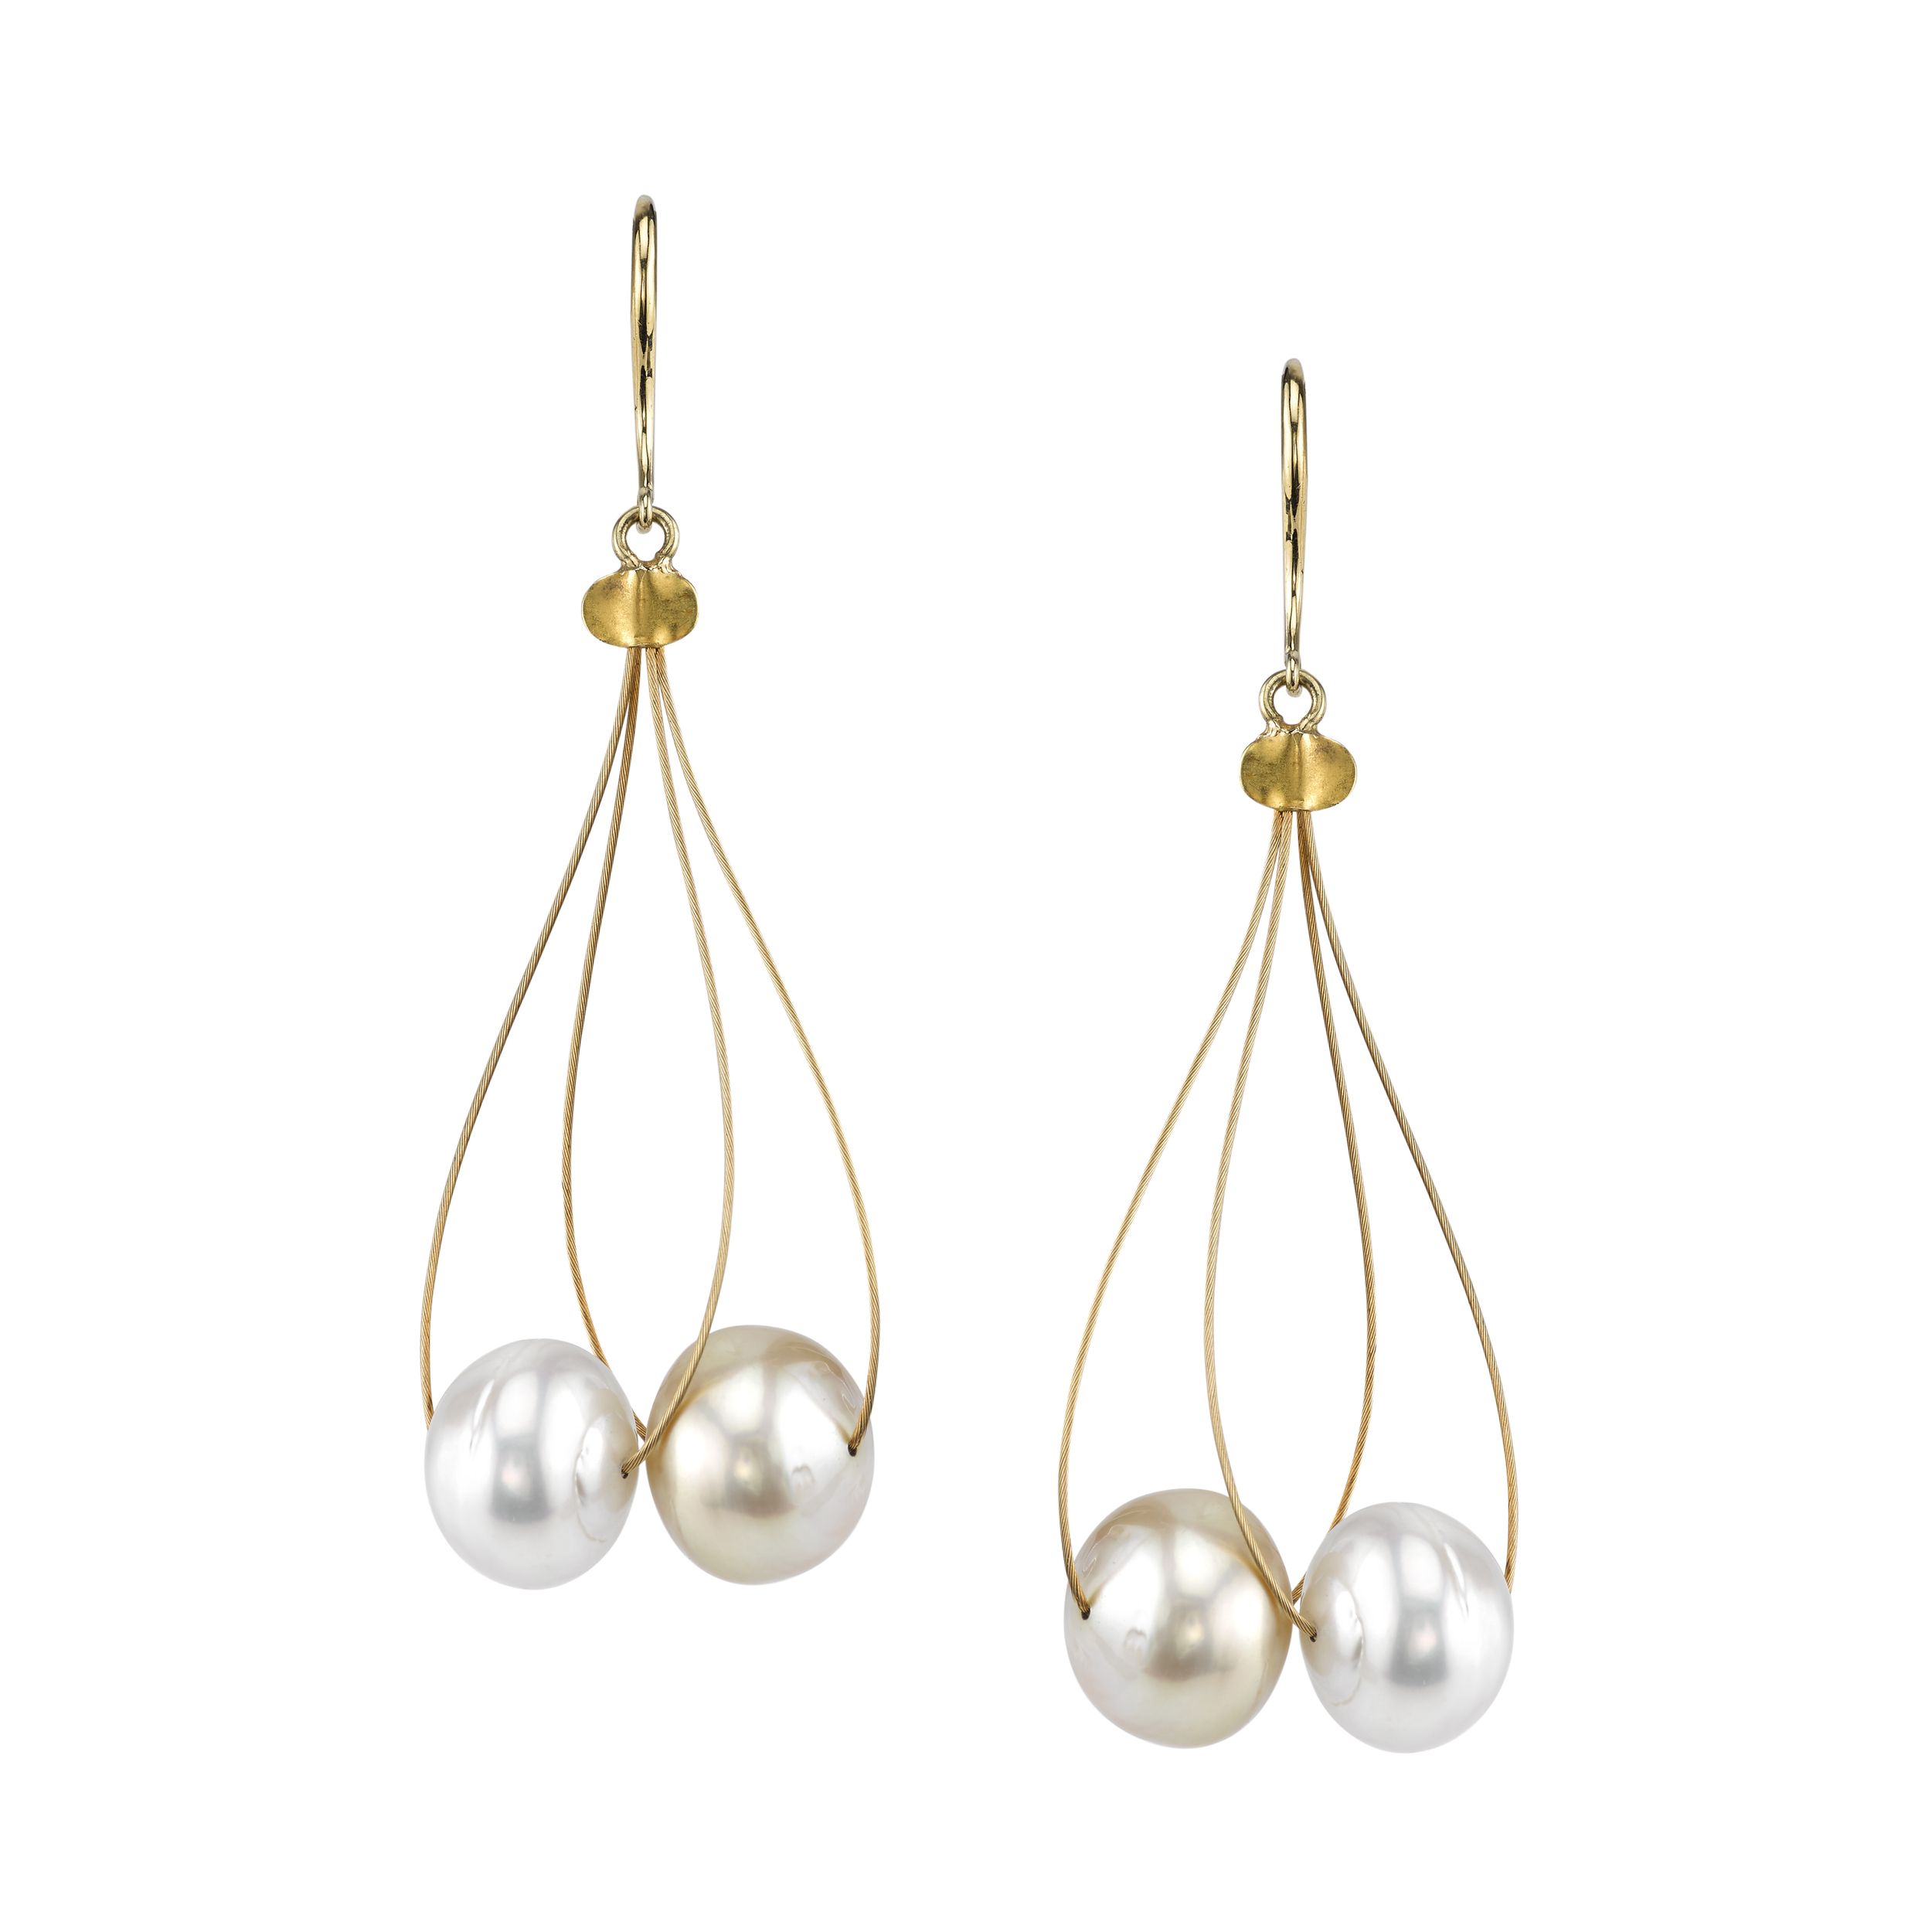 blake pearl south fetneh diamond collections jewelry earrings sea products pearls and circlepearlfront